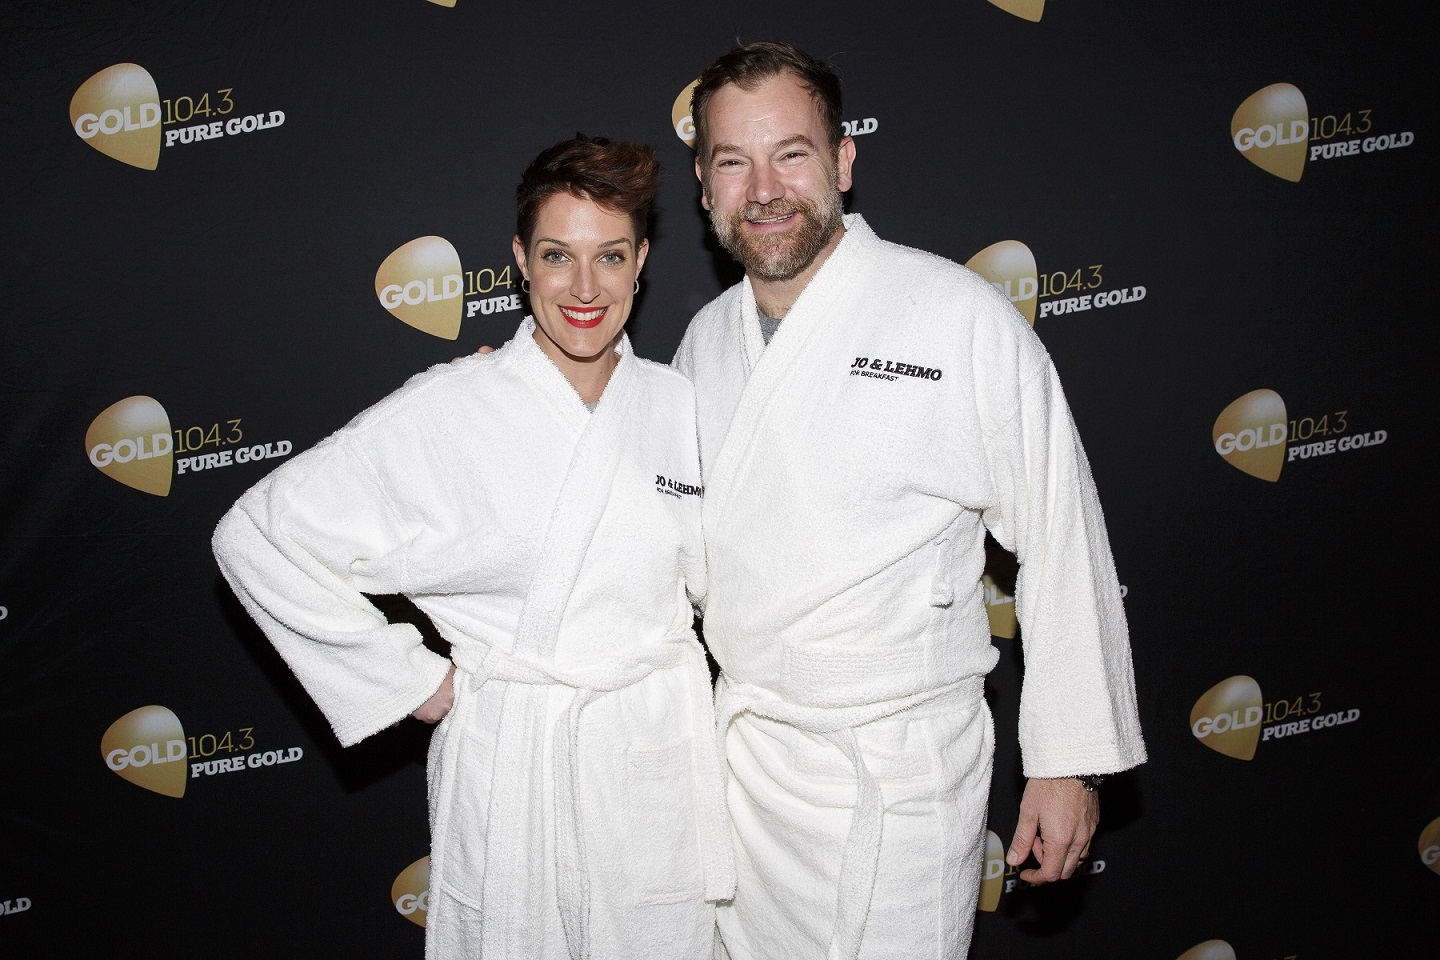 Jo Stanley and Anthony 'Lehmo' Lehmann at GOLD 1043 Jo & Lehmo's Nude Food - Australia's First Naked Restaurant (3) R